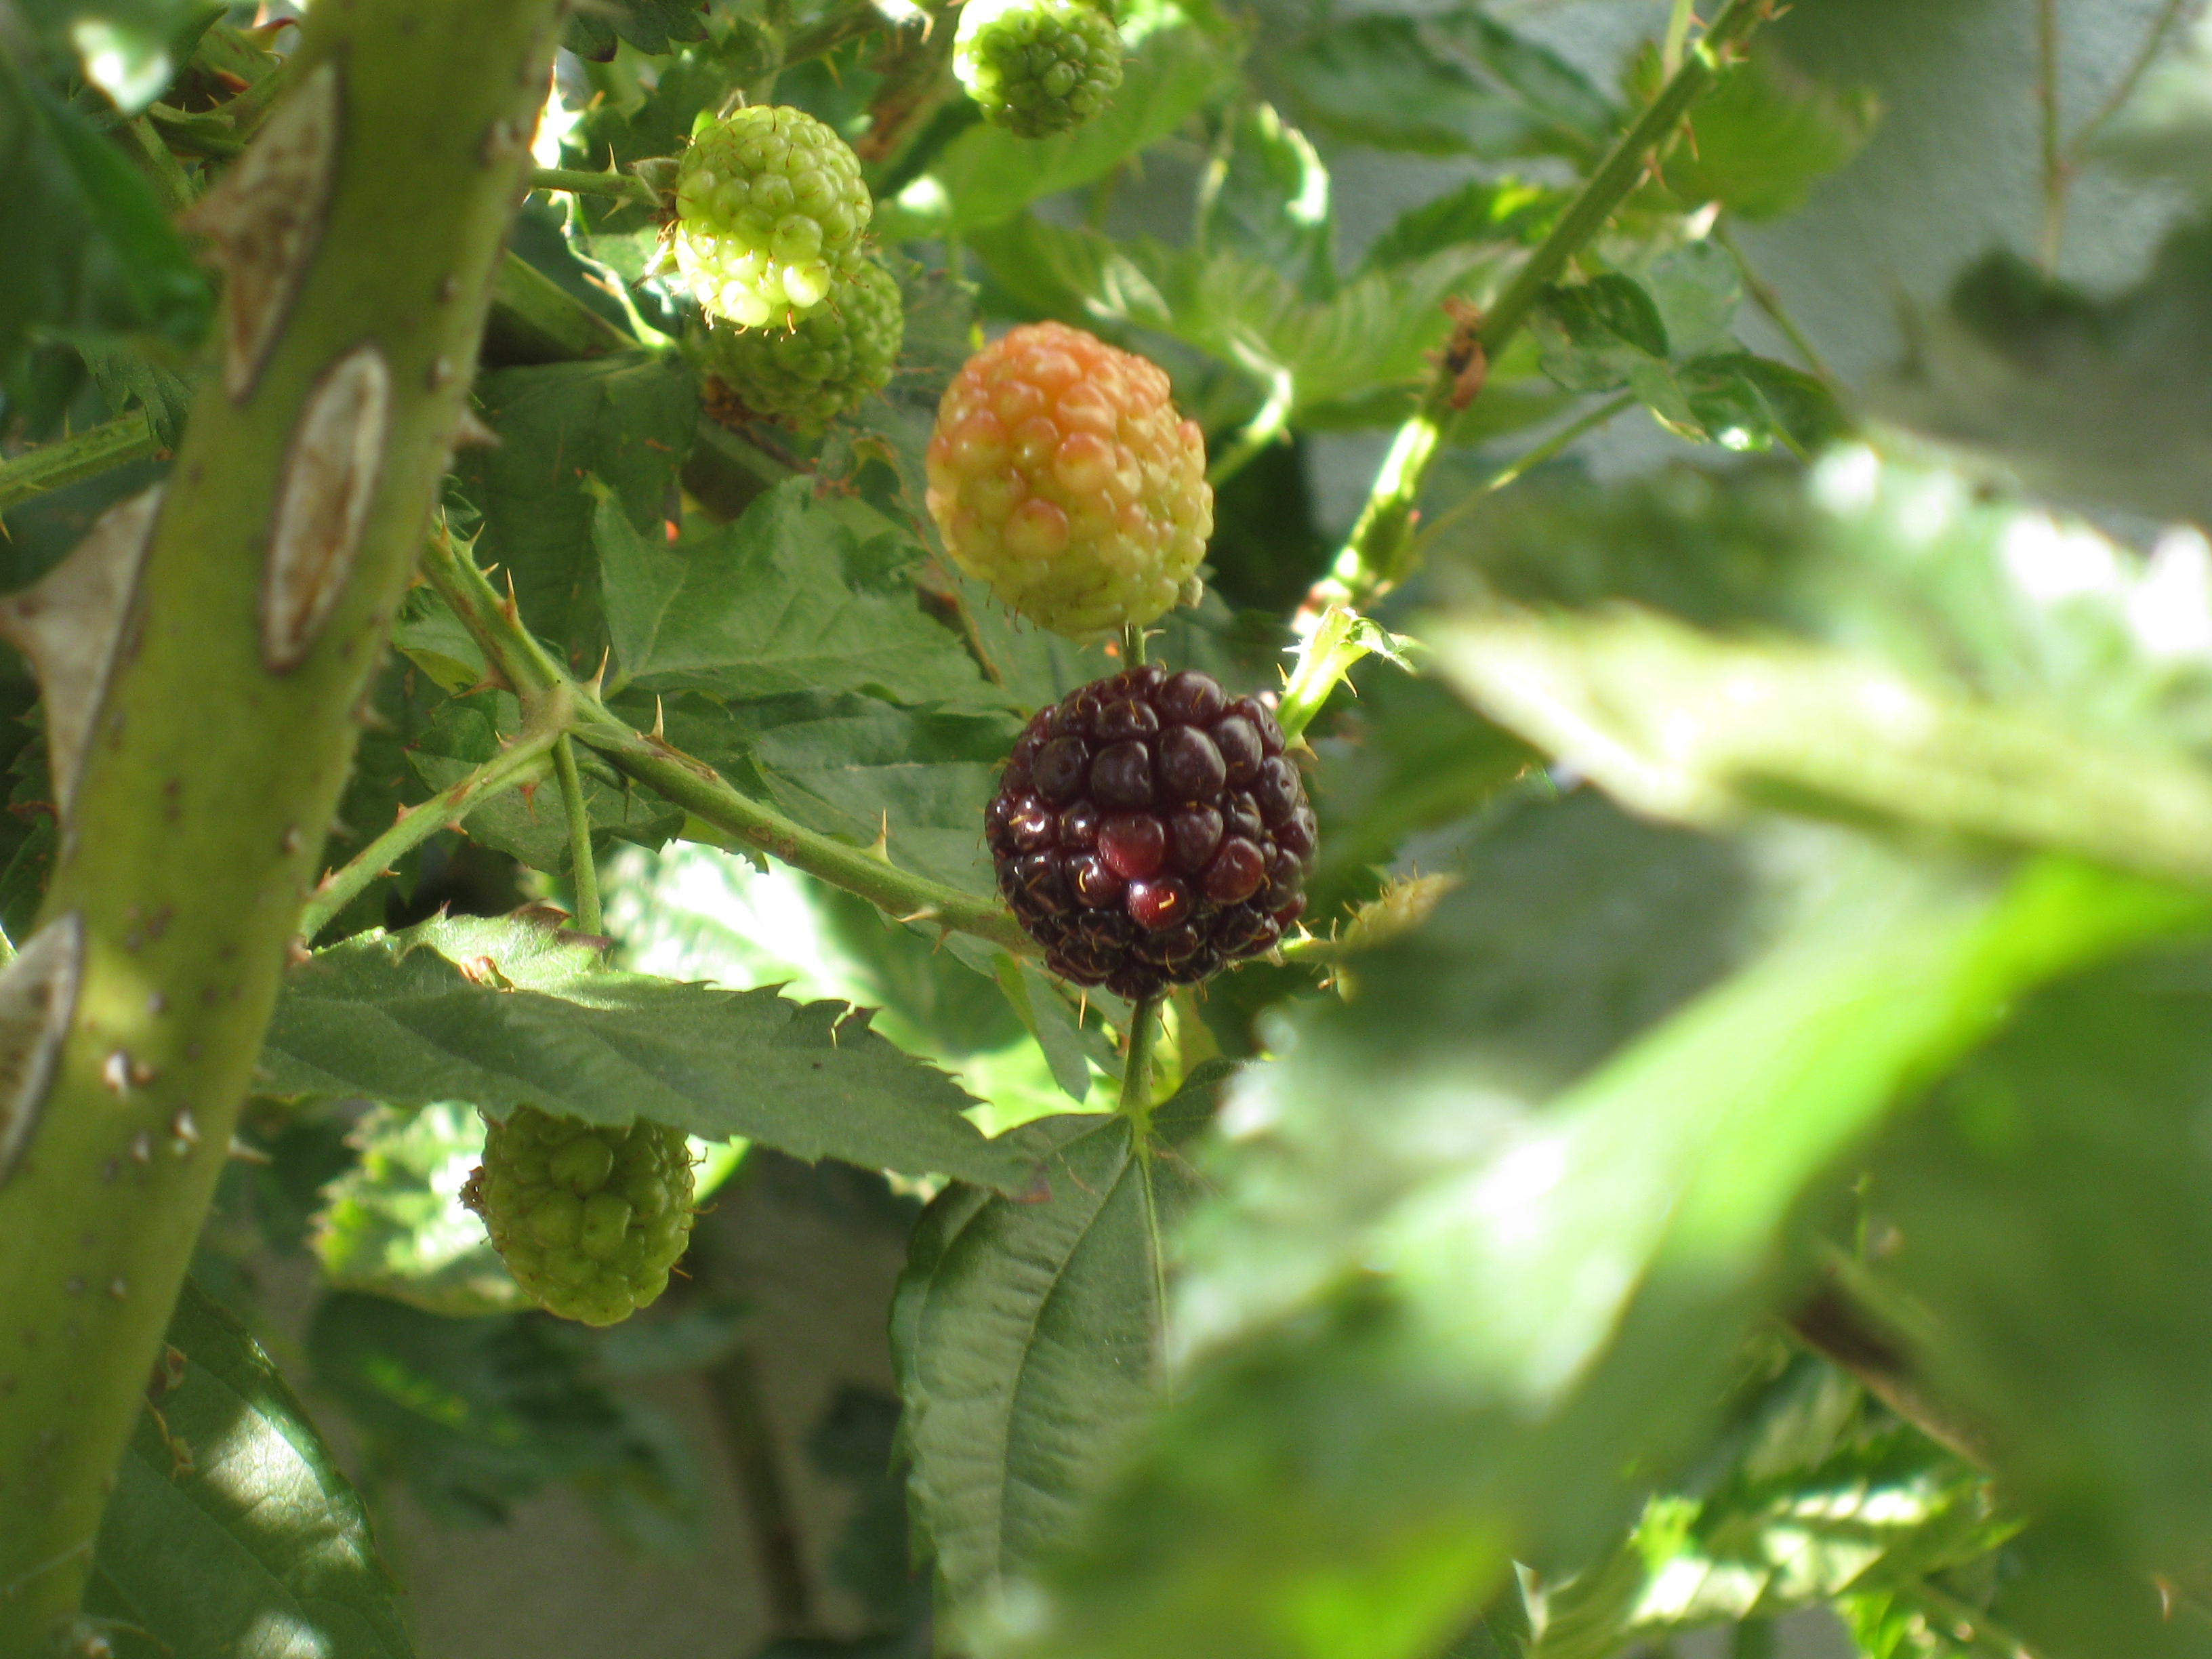 Our first blackberry ripens way in the back. Don't know how we'll reach it to harvest yet.